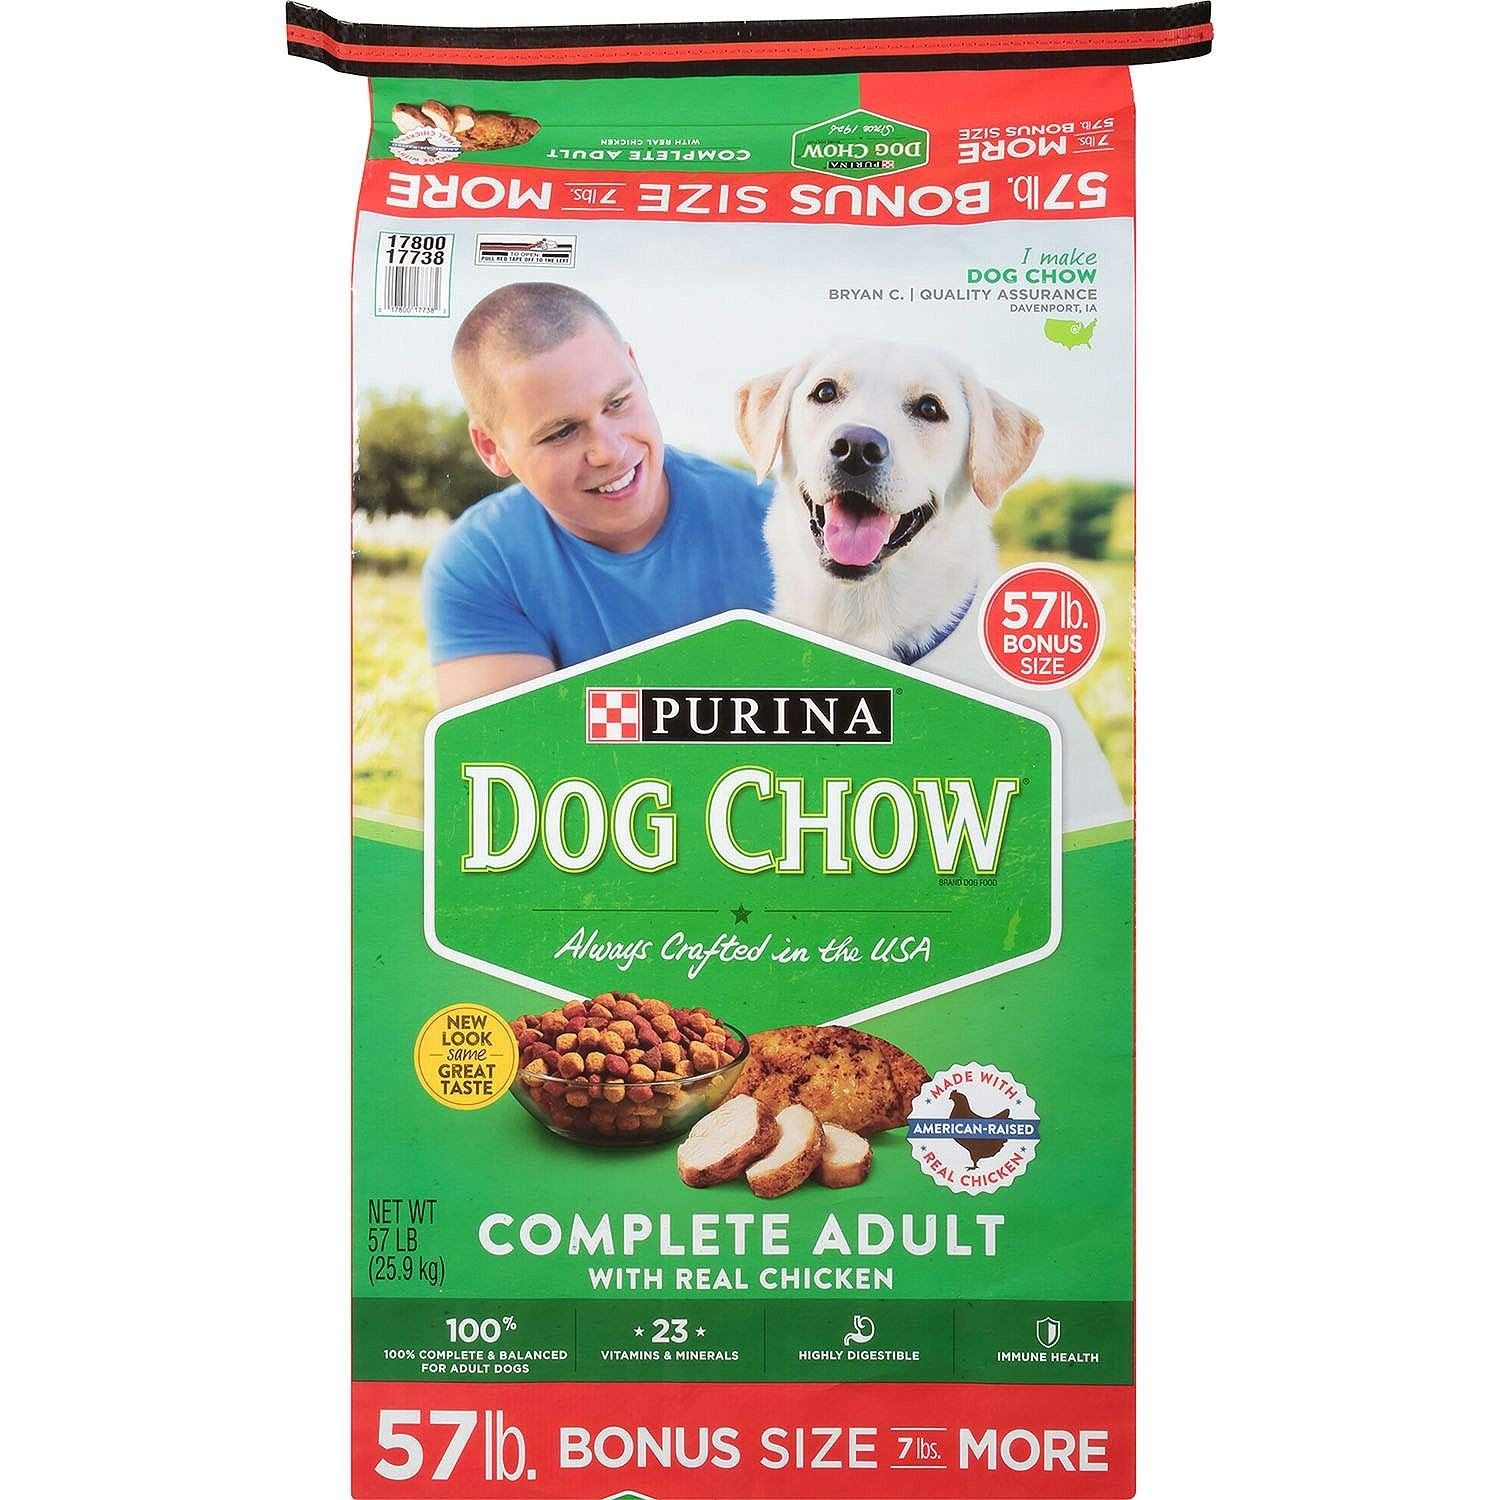 Purina Dog Chow Complete Adult Chicken Dry Dog Food Real Chicken